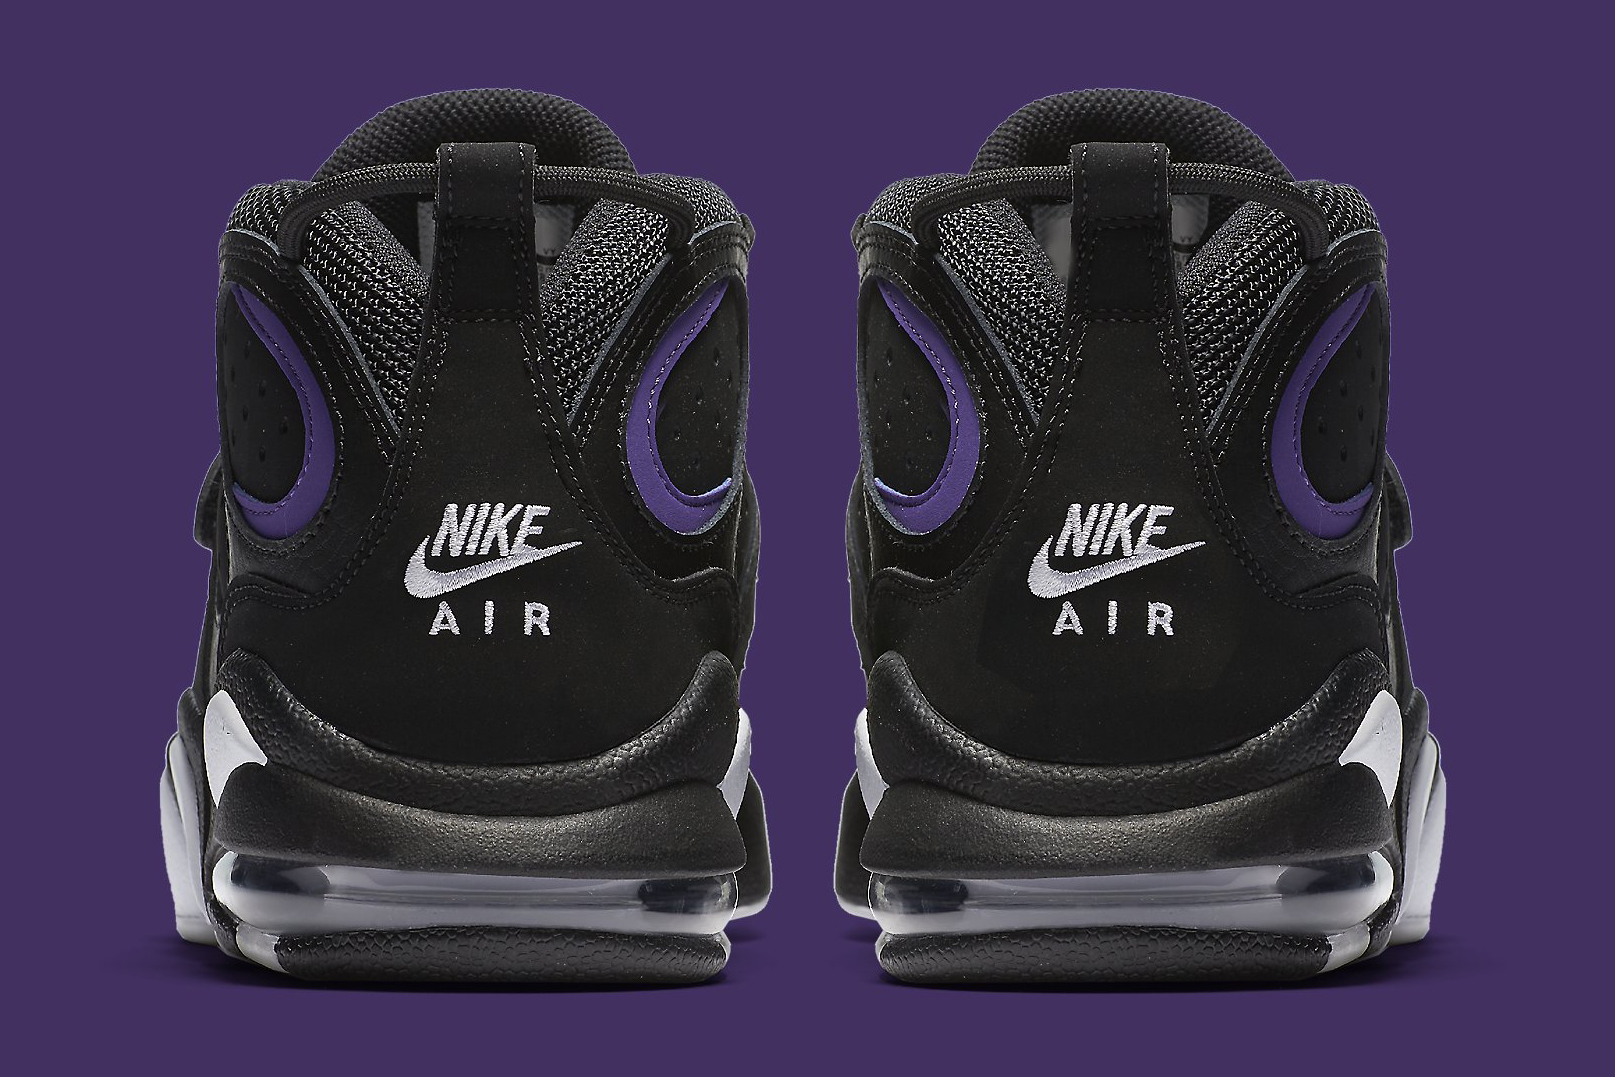 Nike Air CB 34 Black Purple Heel